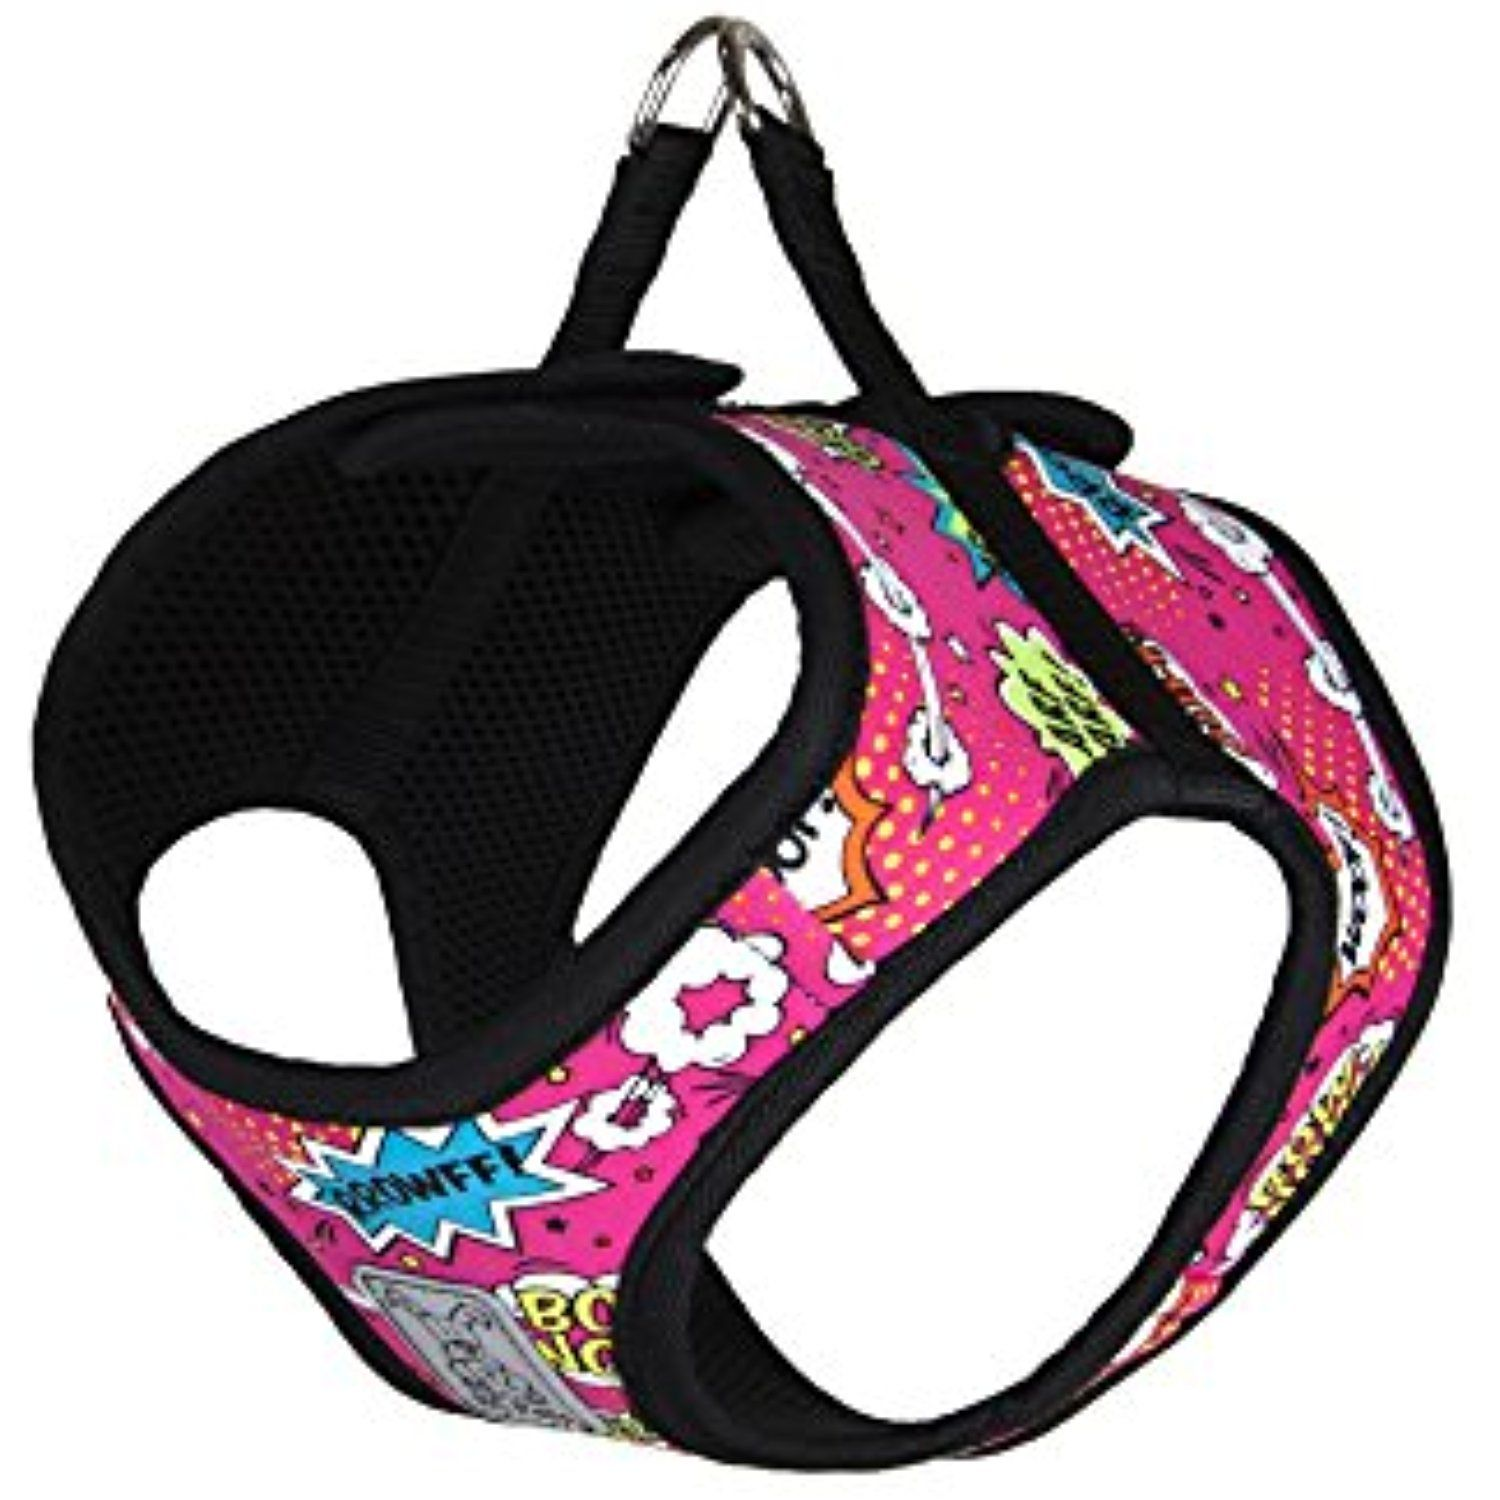 RC Pet Products Cirque Soft Walking StepIn Dog Harness